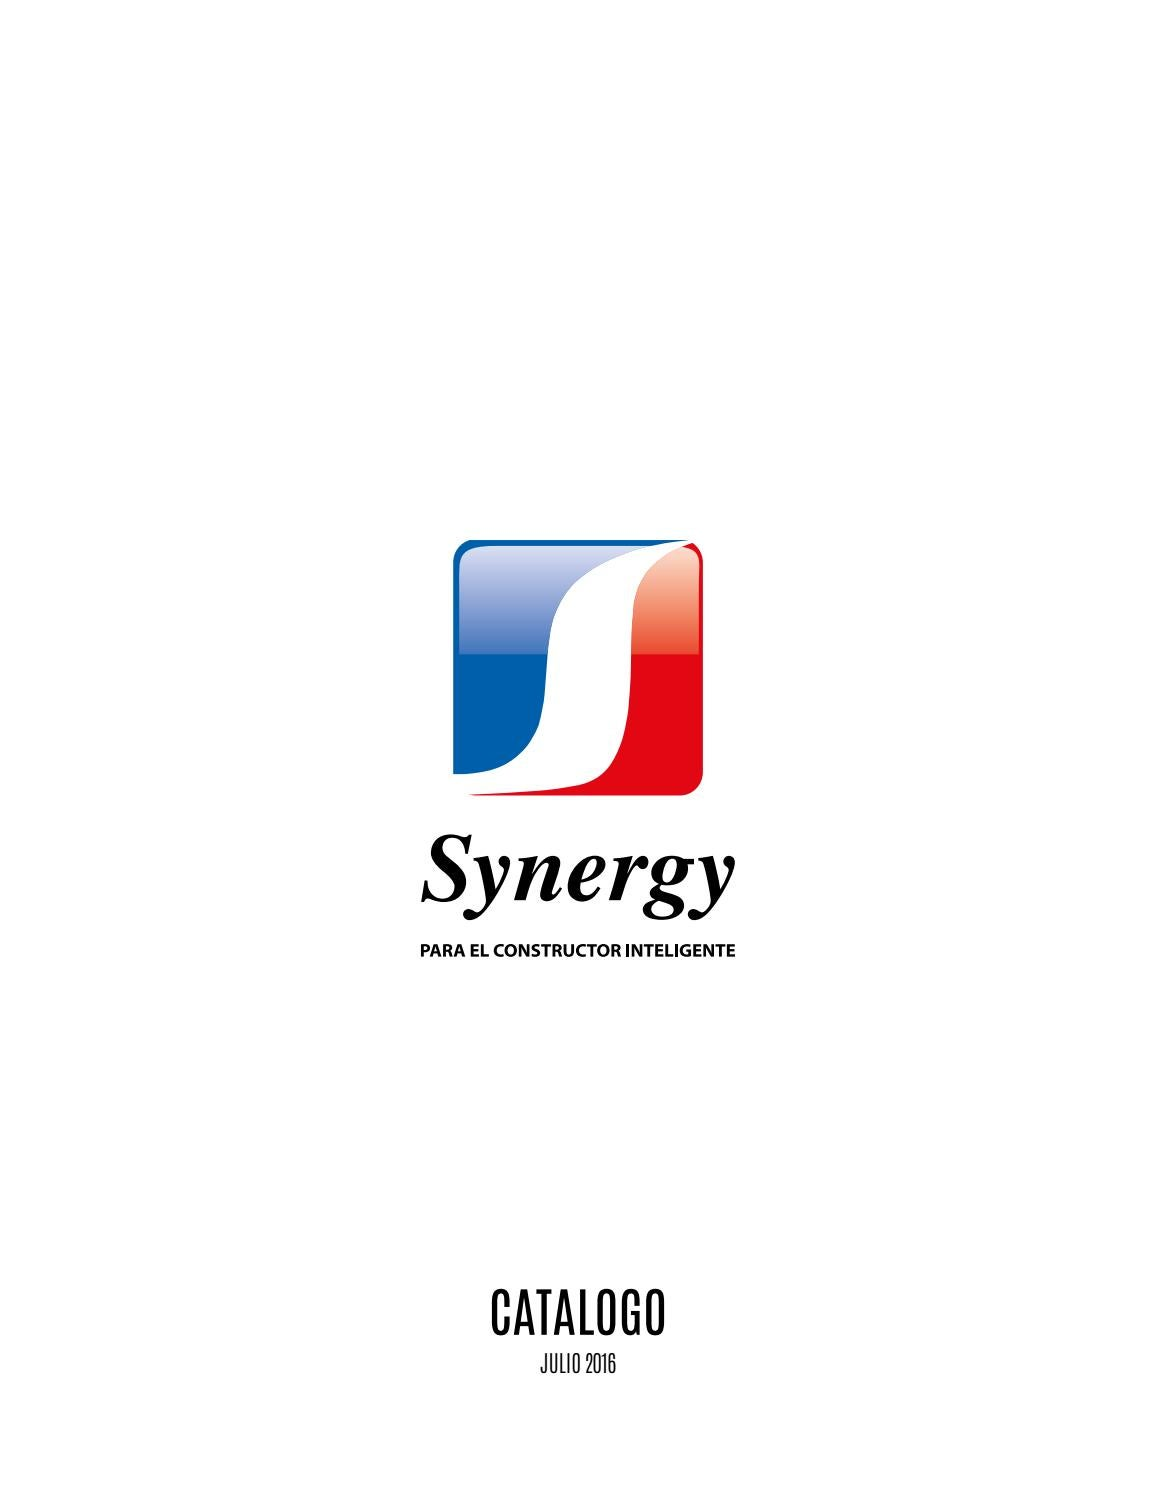 Catalogo Synergy 2016 By Synergy Issuu